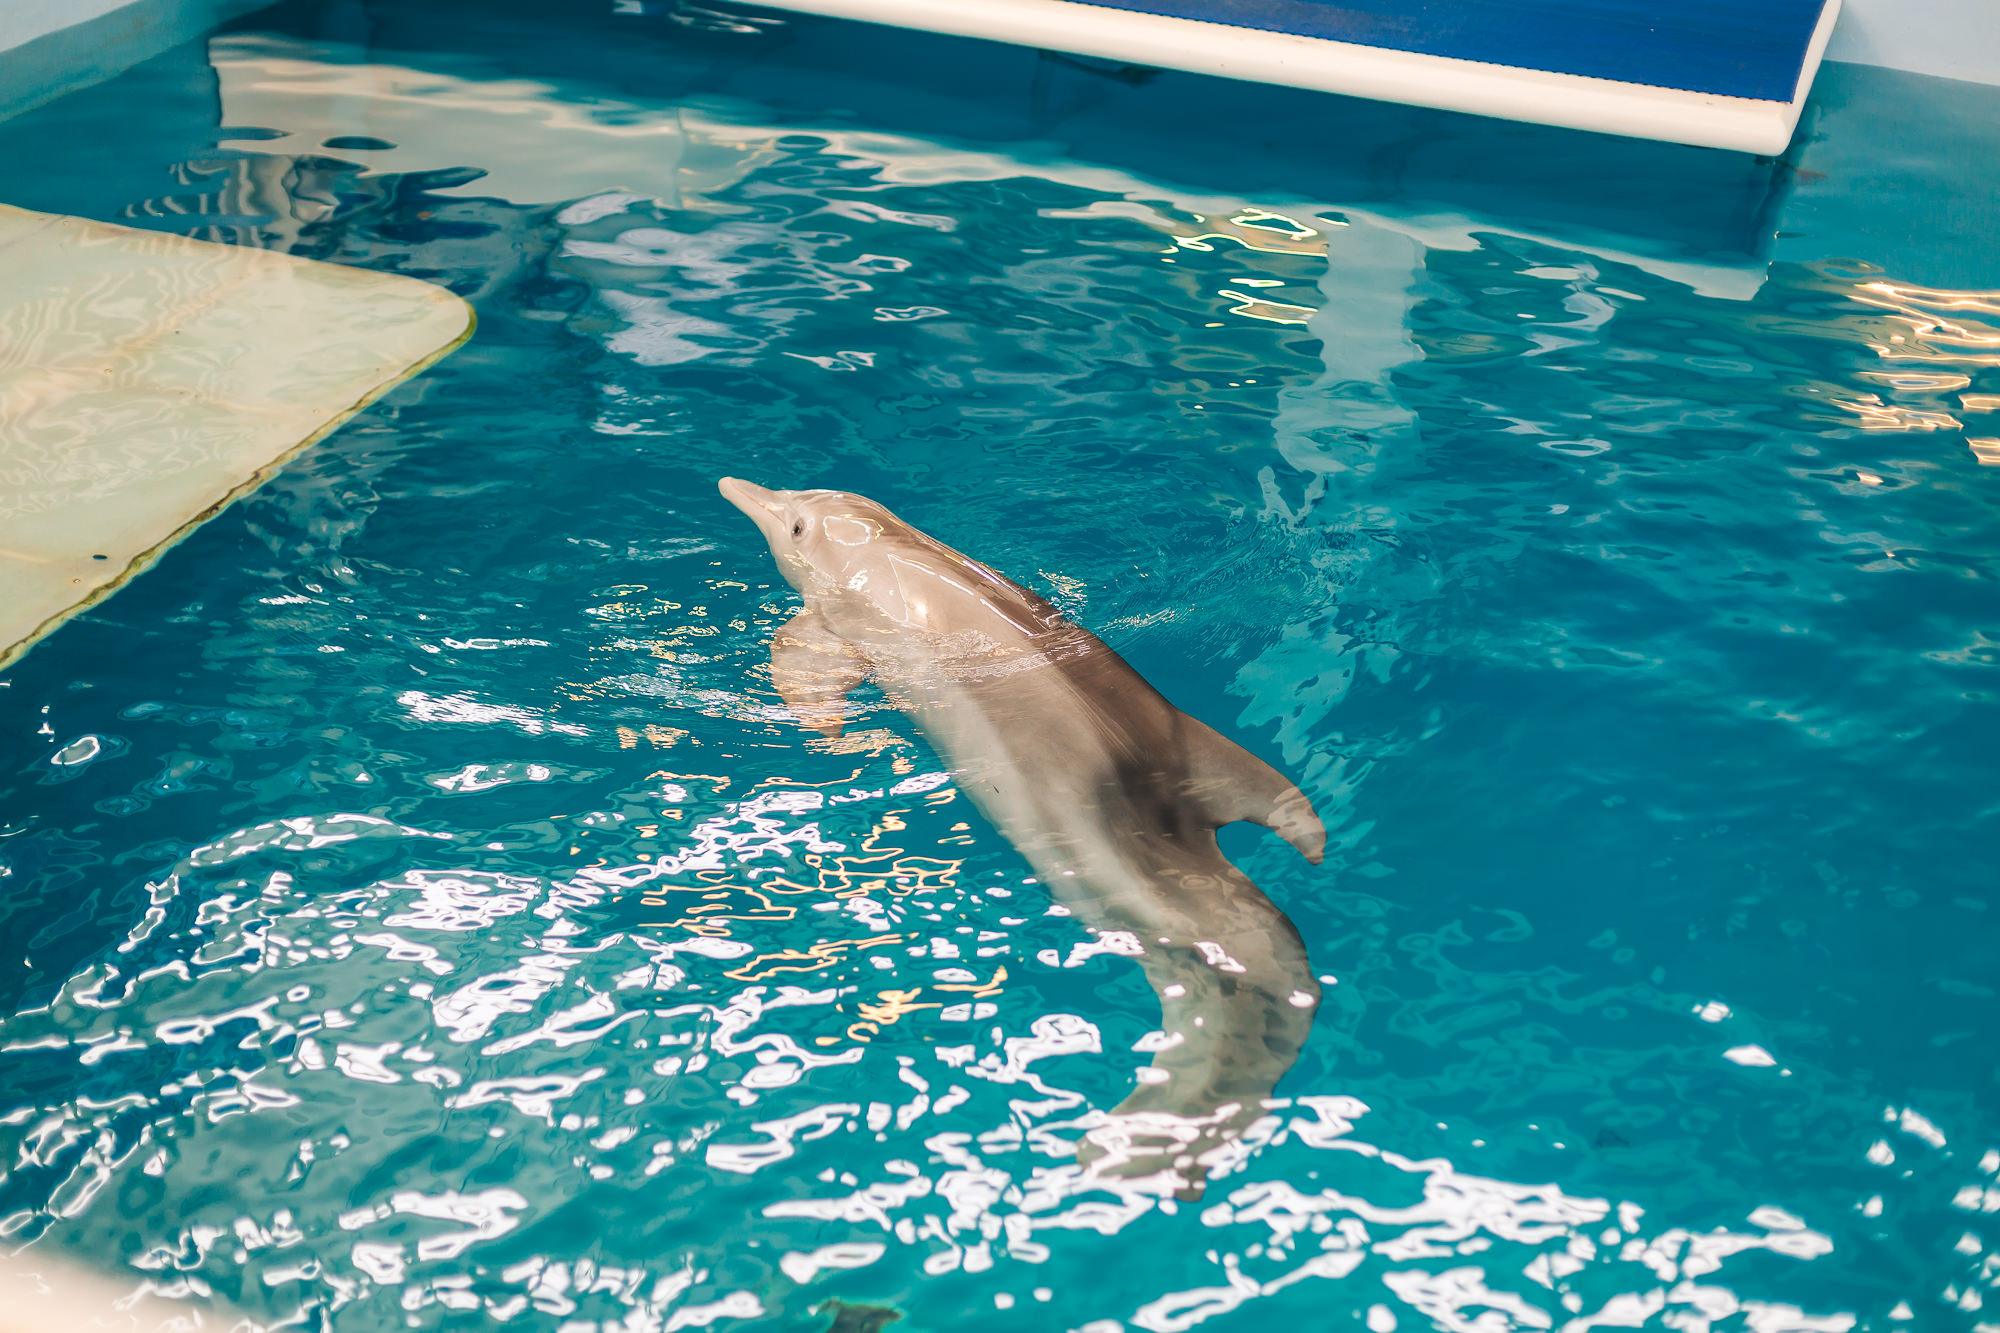 It's Winter the dolphin!